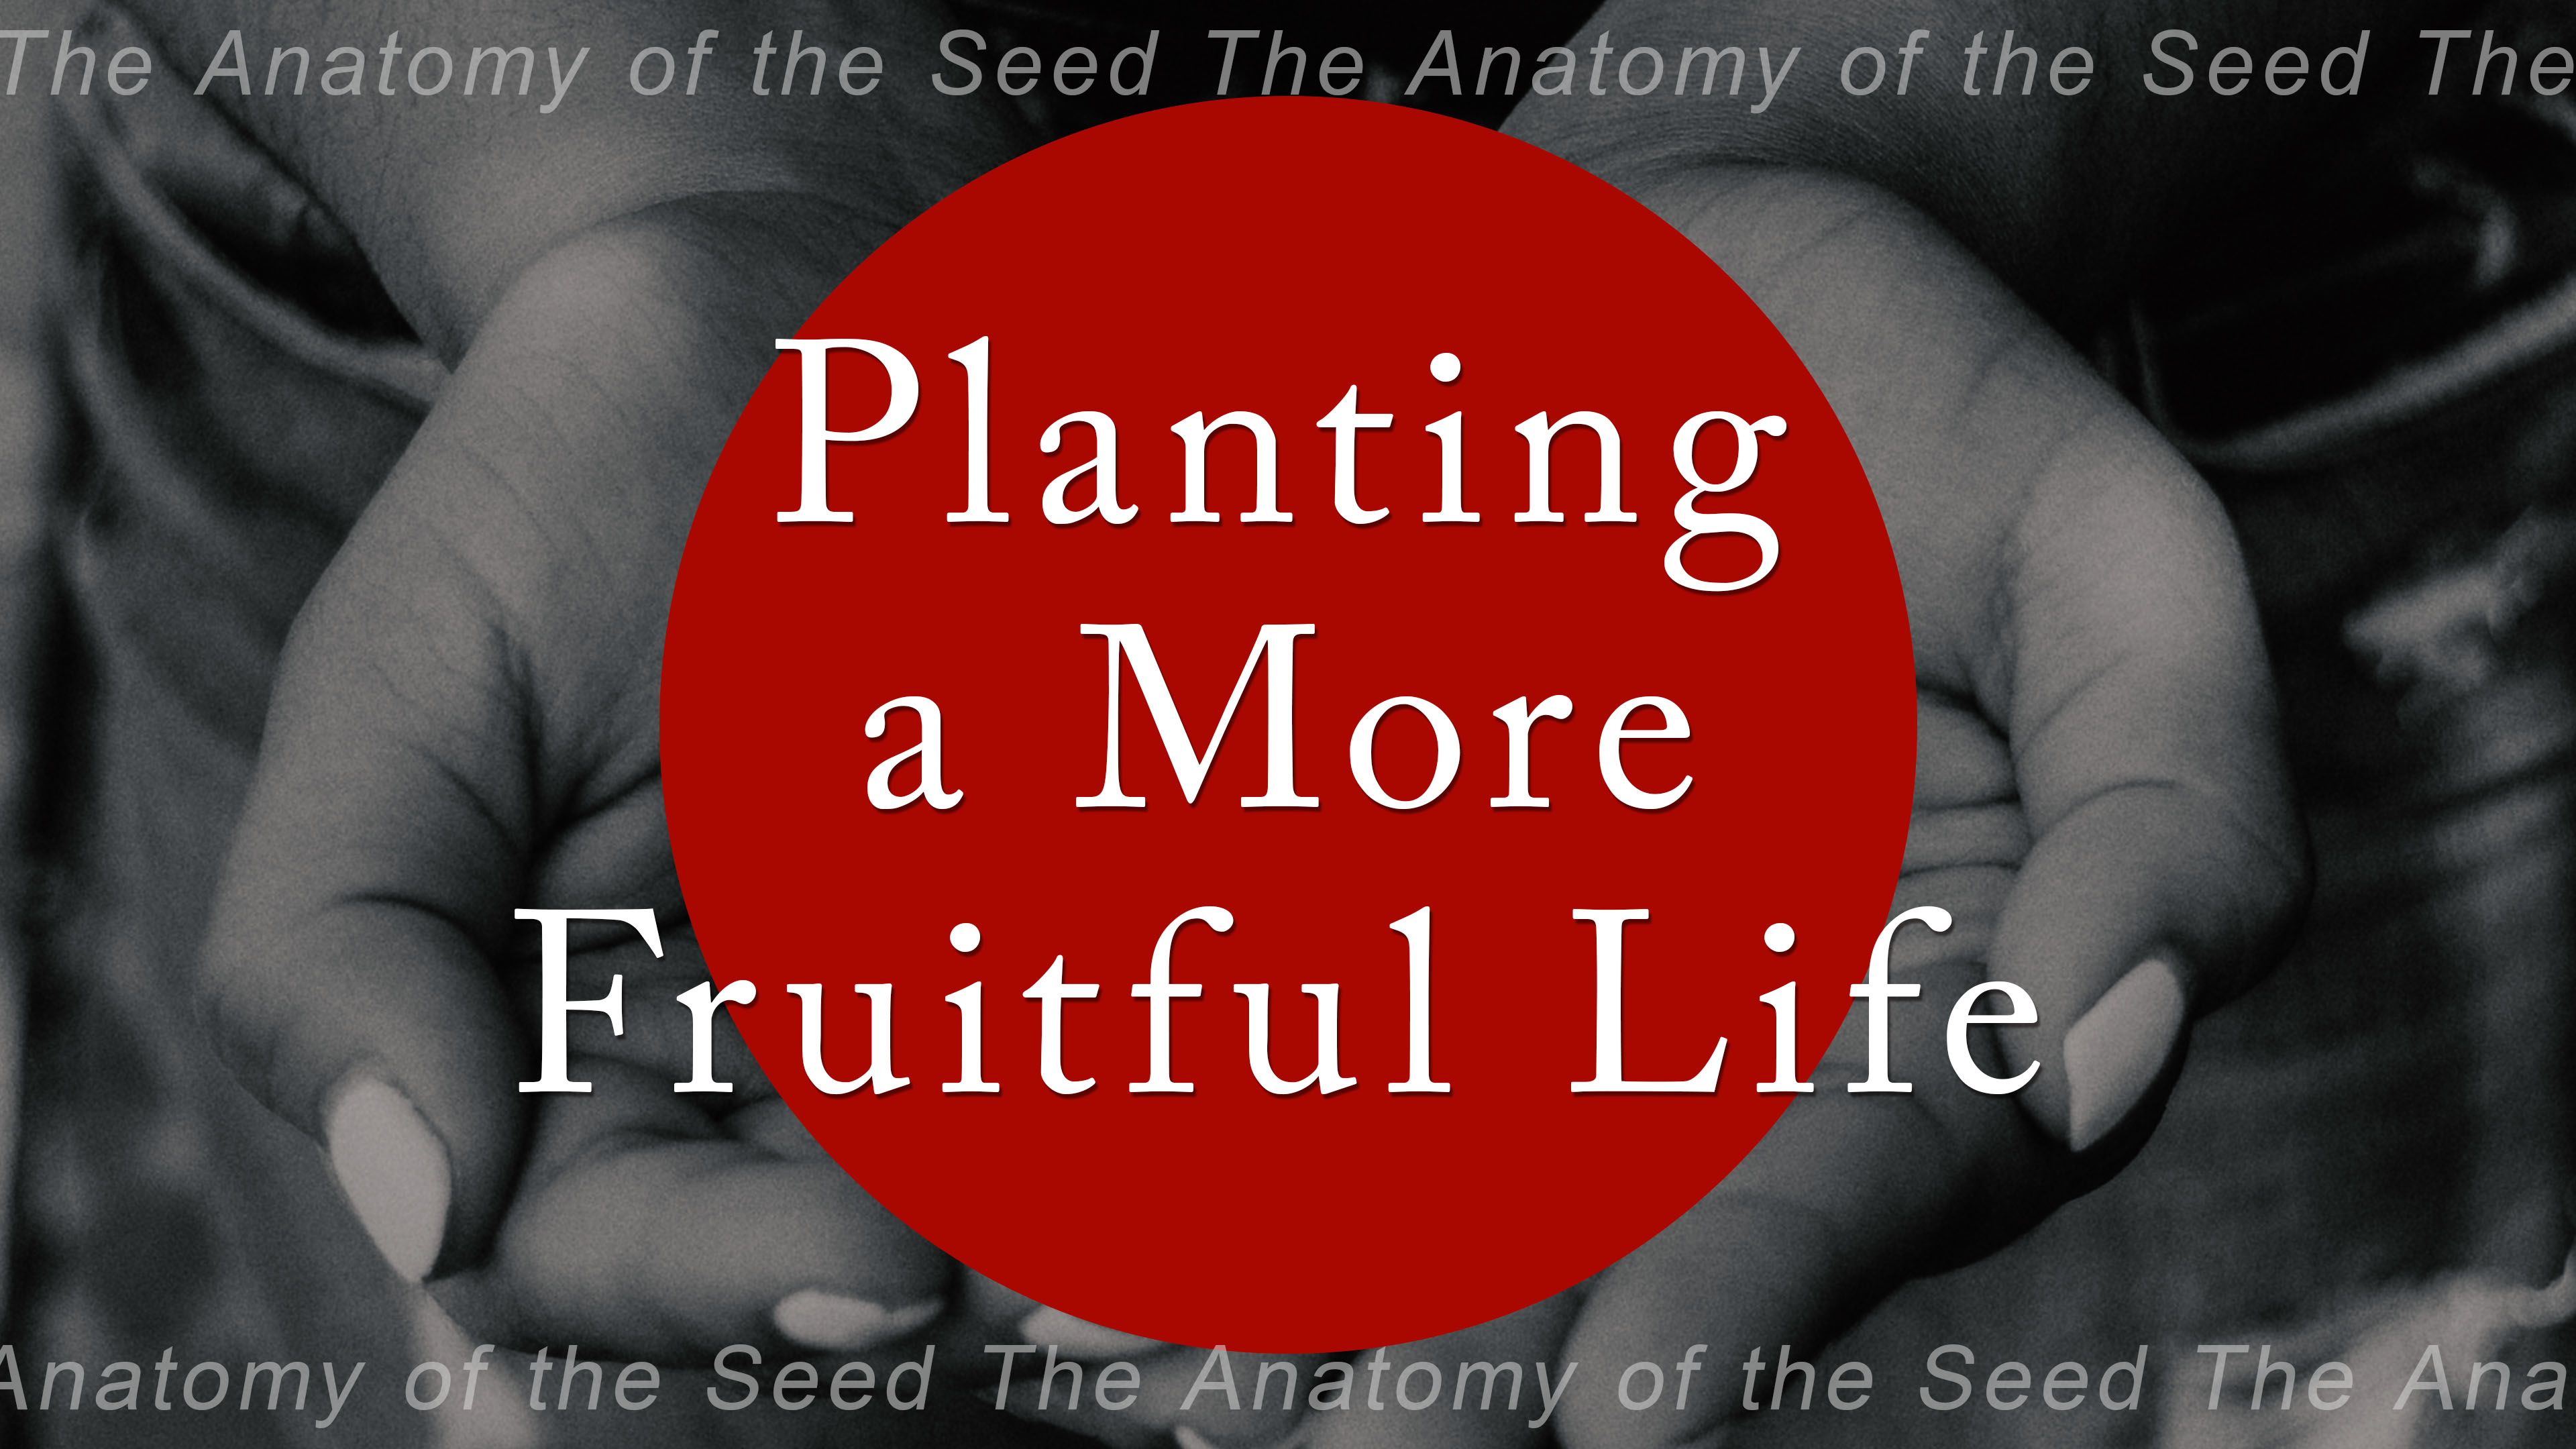 Planting a More Fruitful Life Image